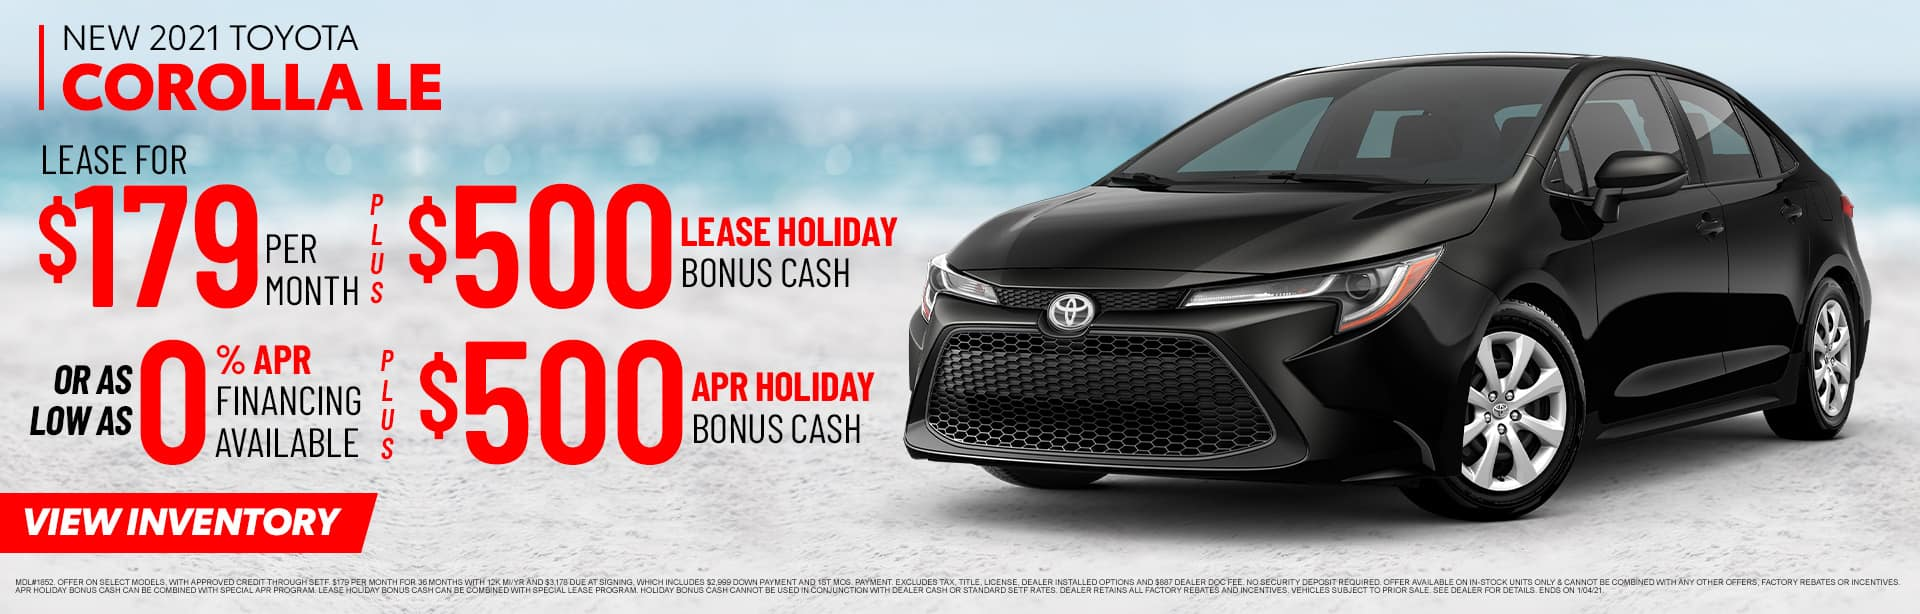 New 2021 Toyota Corolla LE | Sales Now at Toyota of Fort Walton Beach